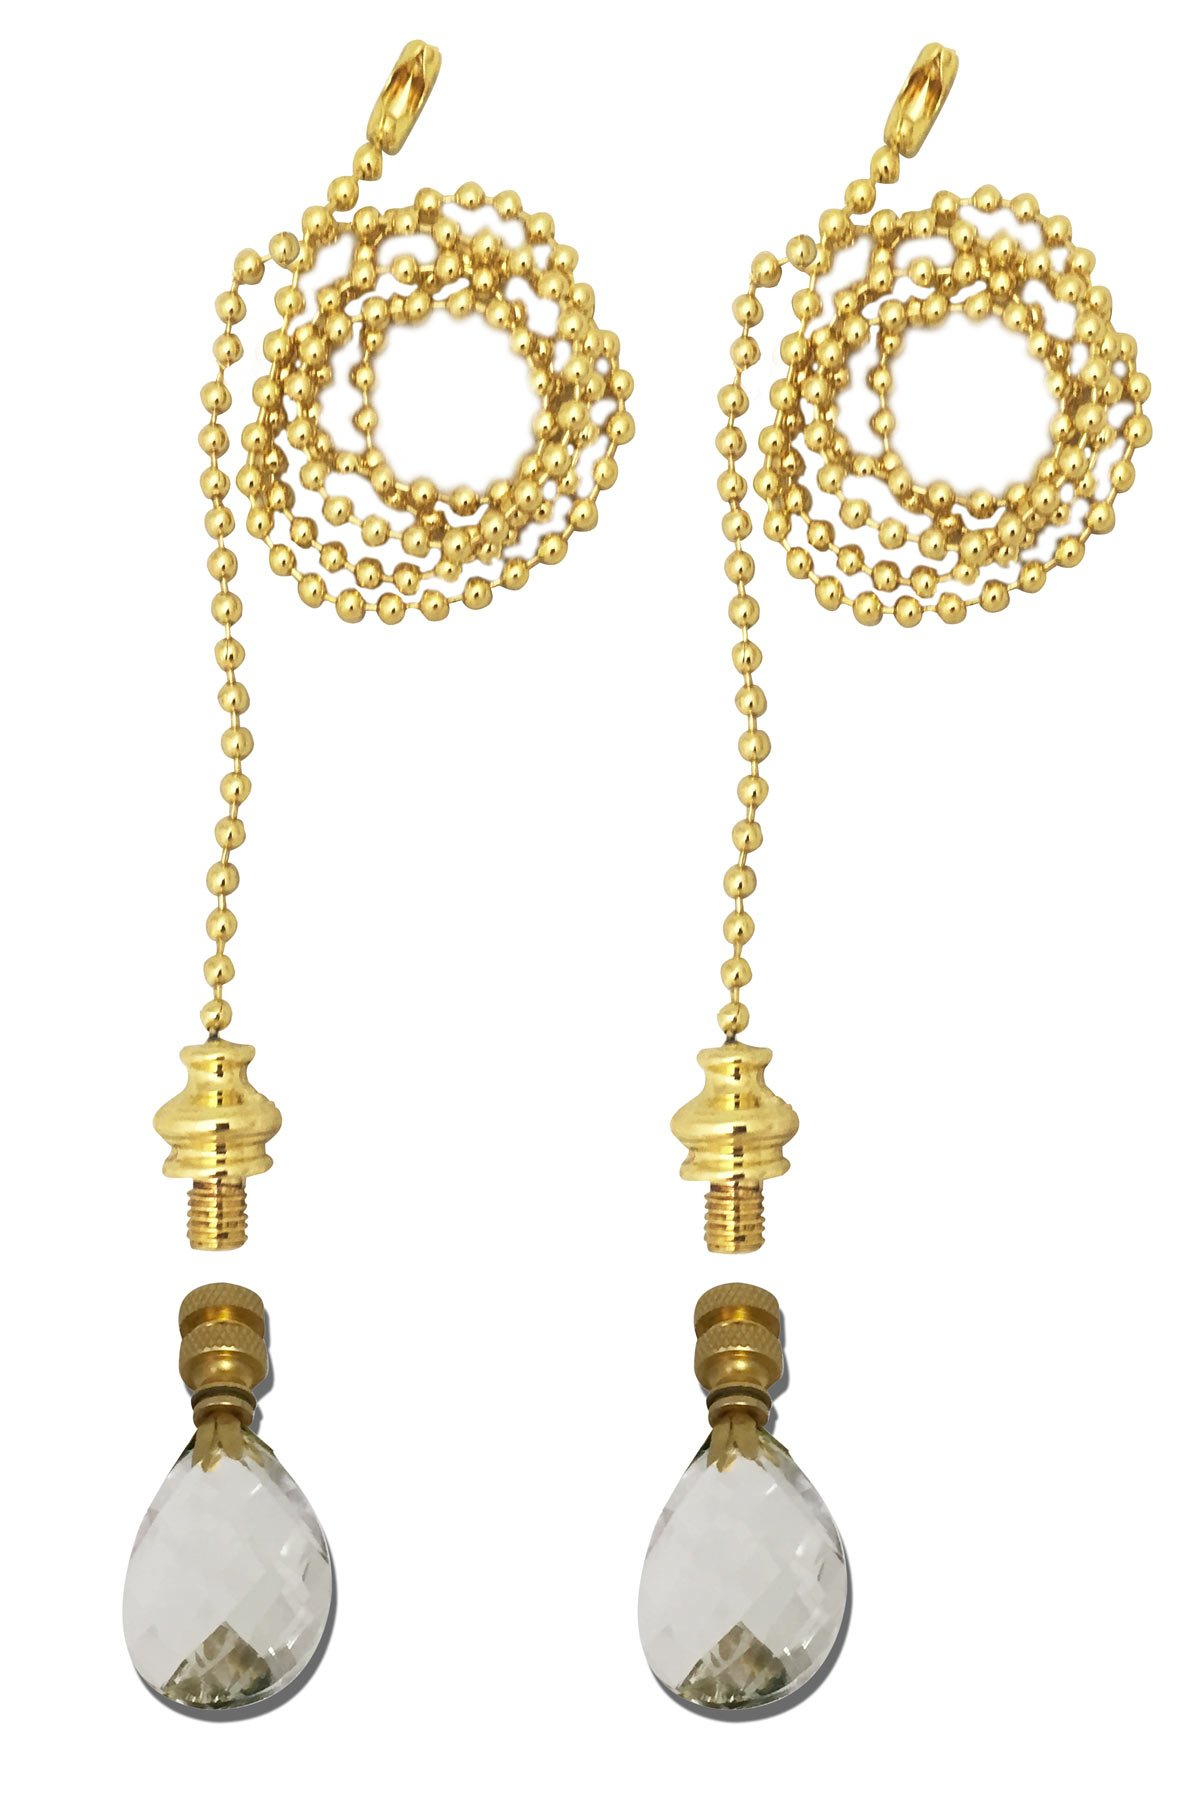 Royal Designs Fan Pull Chain with Small Swiss Cut Diamond Crystal Finial - Polished Brass - Set of 2